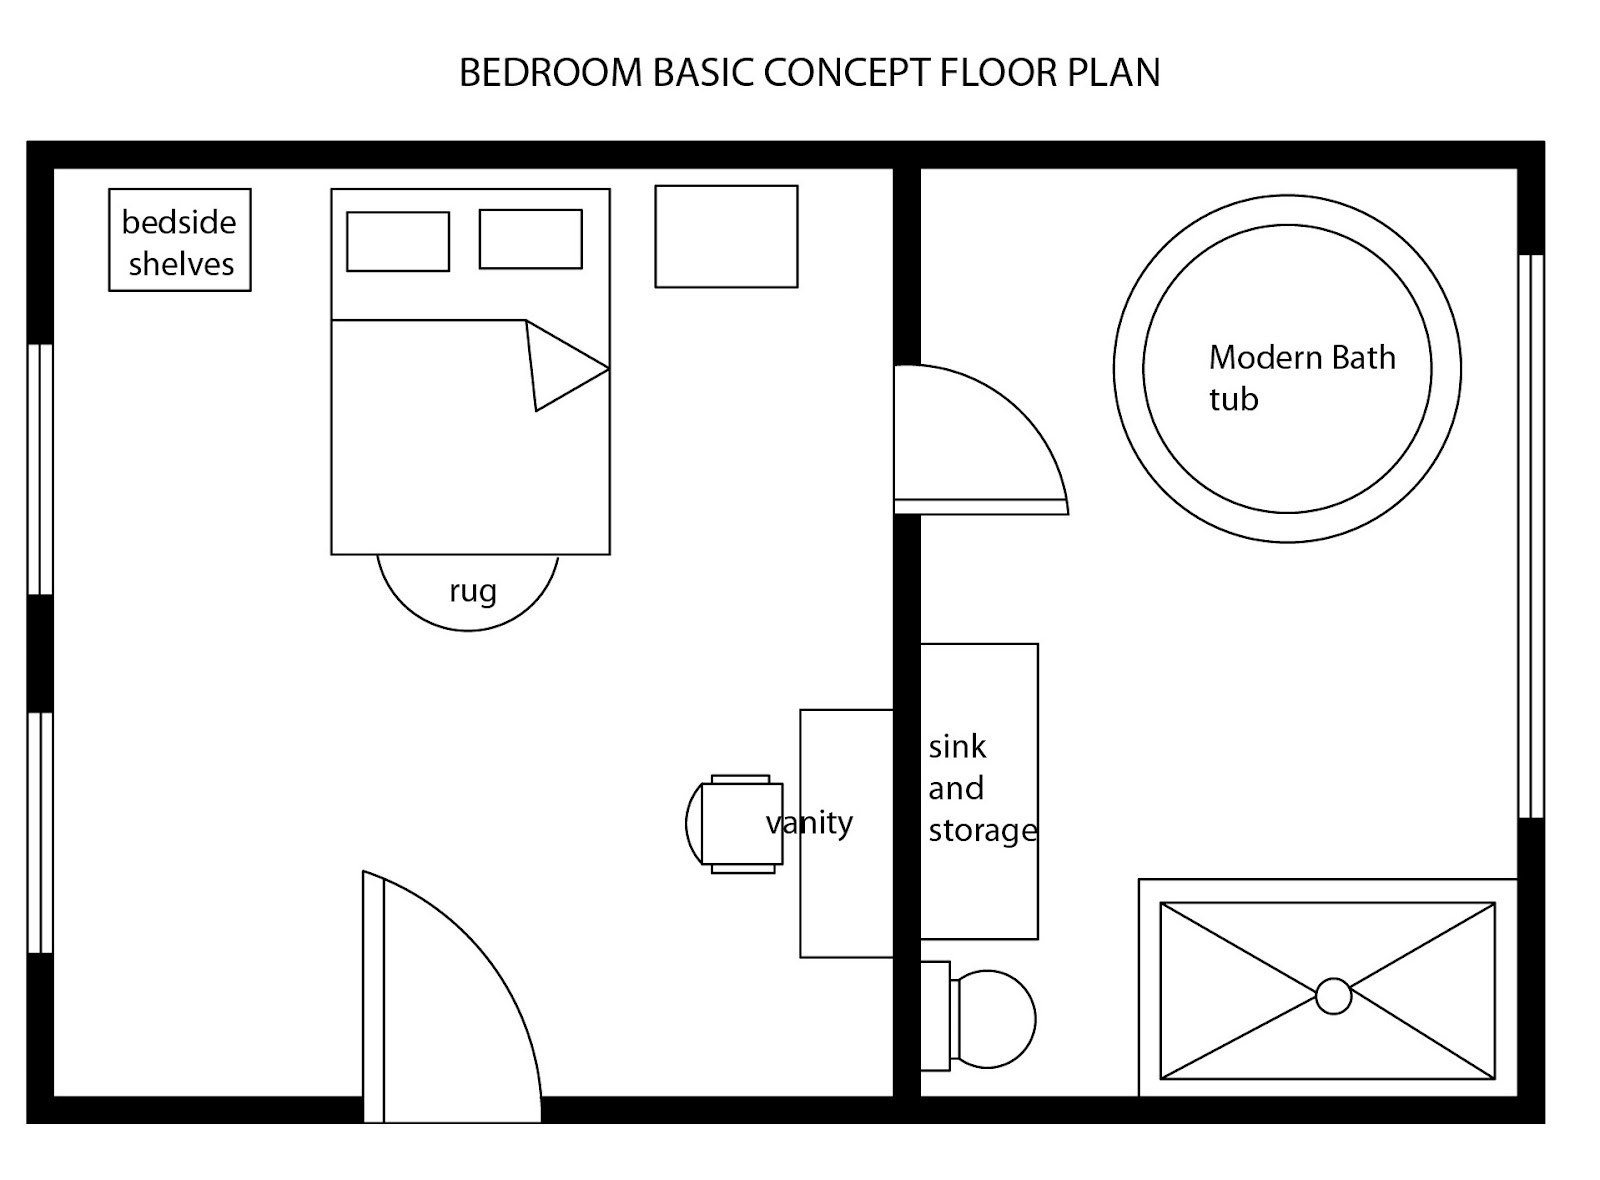 Interior design decor modern bedroom basic floor plan for Design layout 2 bedroom flat